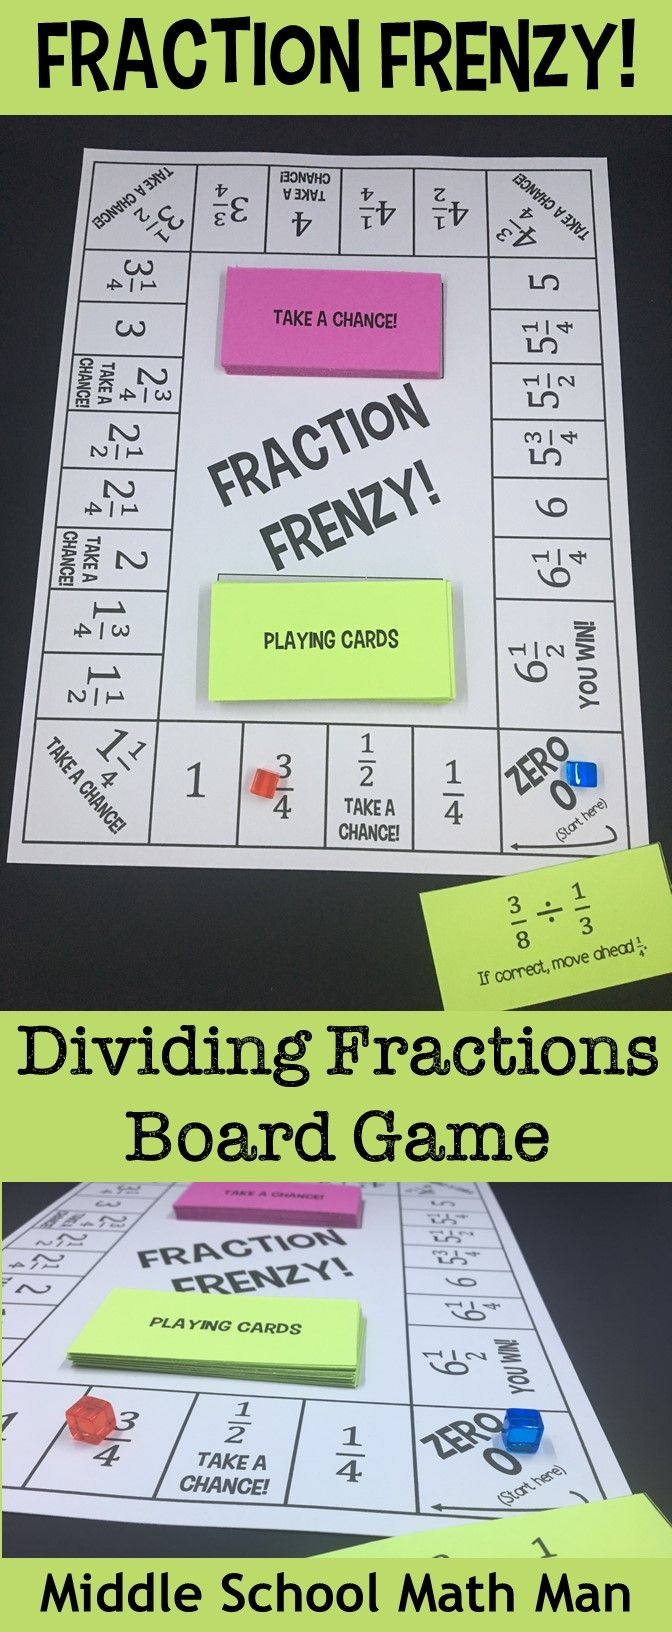 Fraction Frenzy! A Dividing Fractions Board Game | Math board games ...